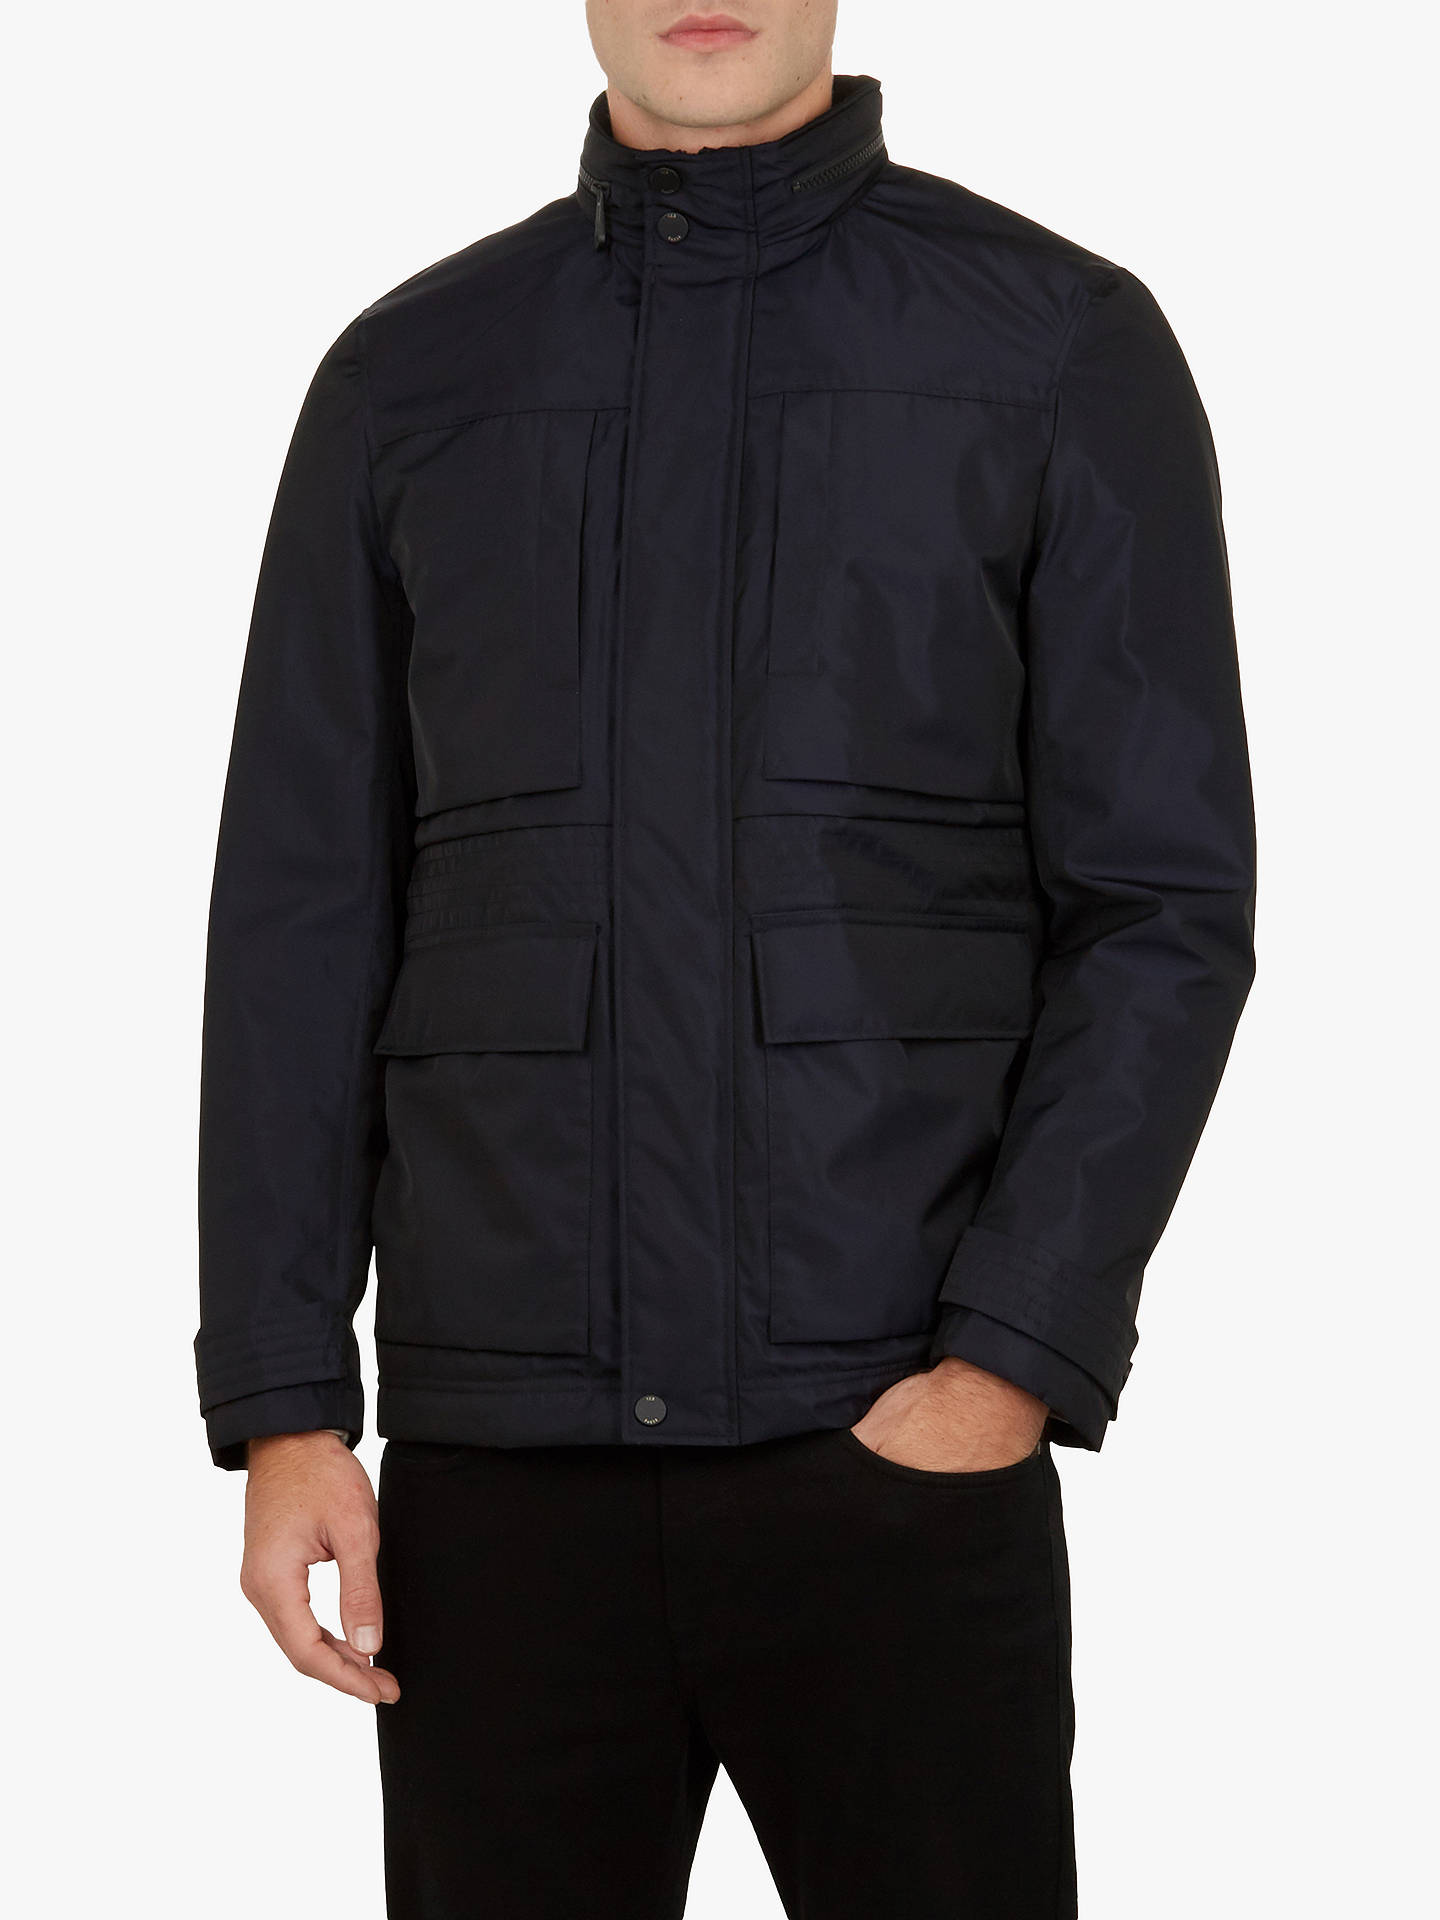 830a54623944 Ted Baker Oka Field Jacket at John Lewis   Partners